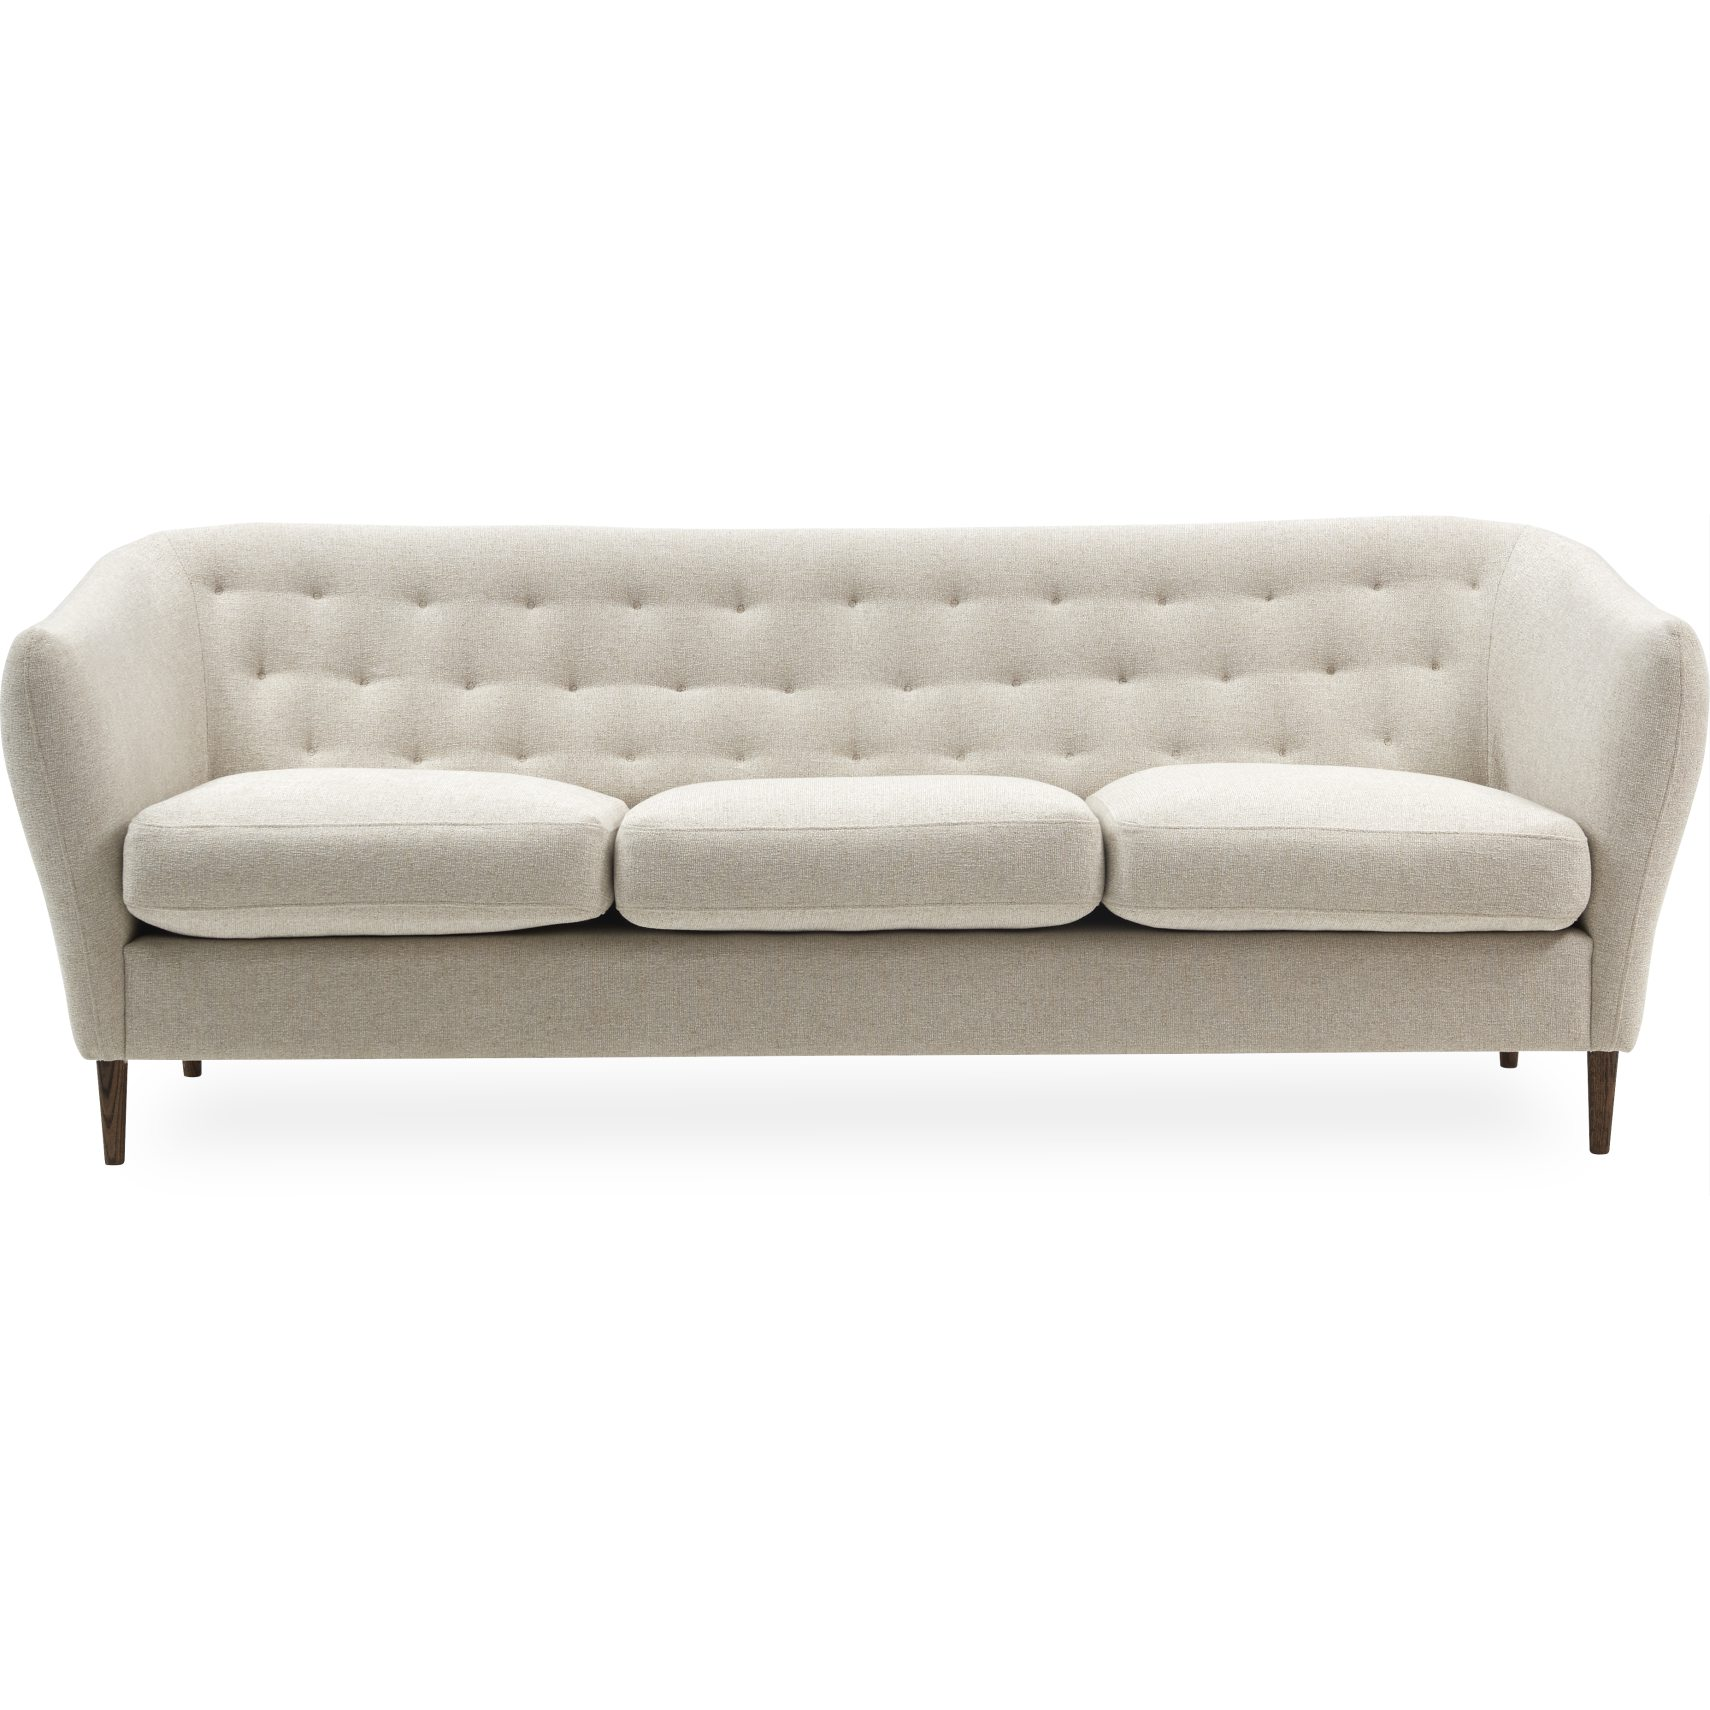 Duffy 3 pers Sofa